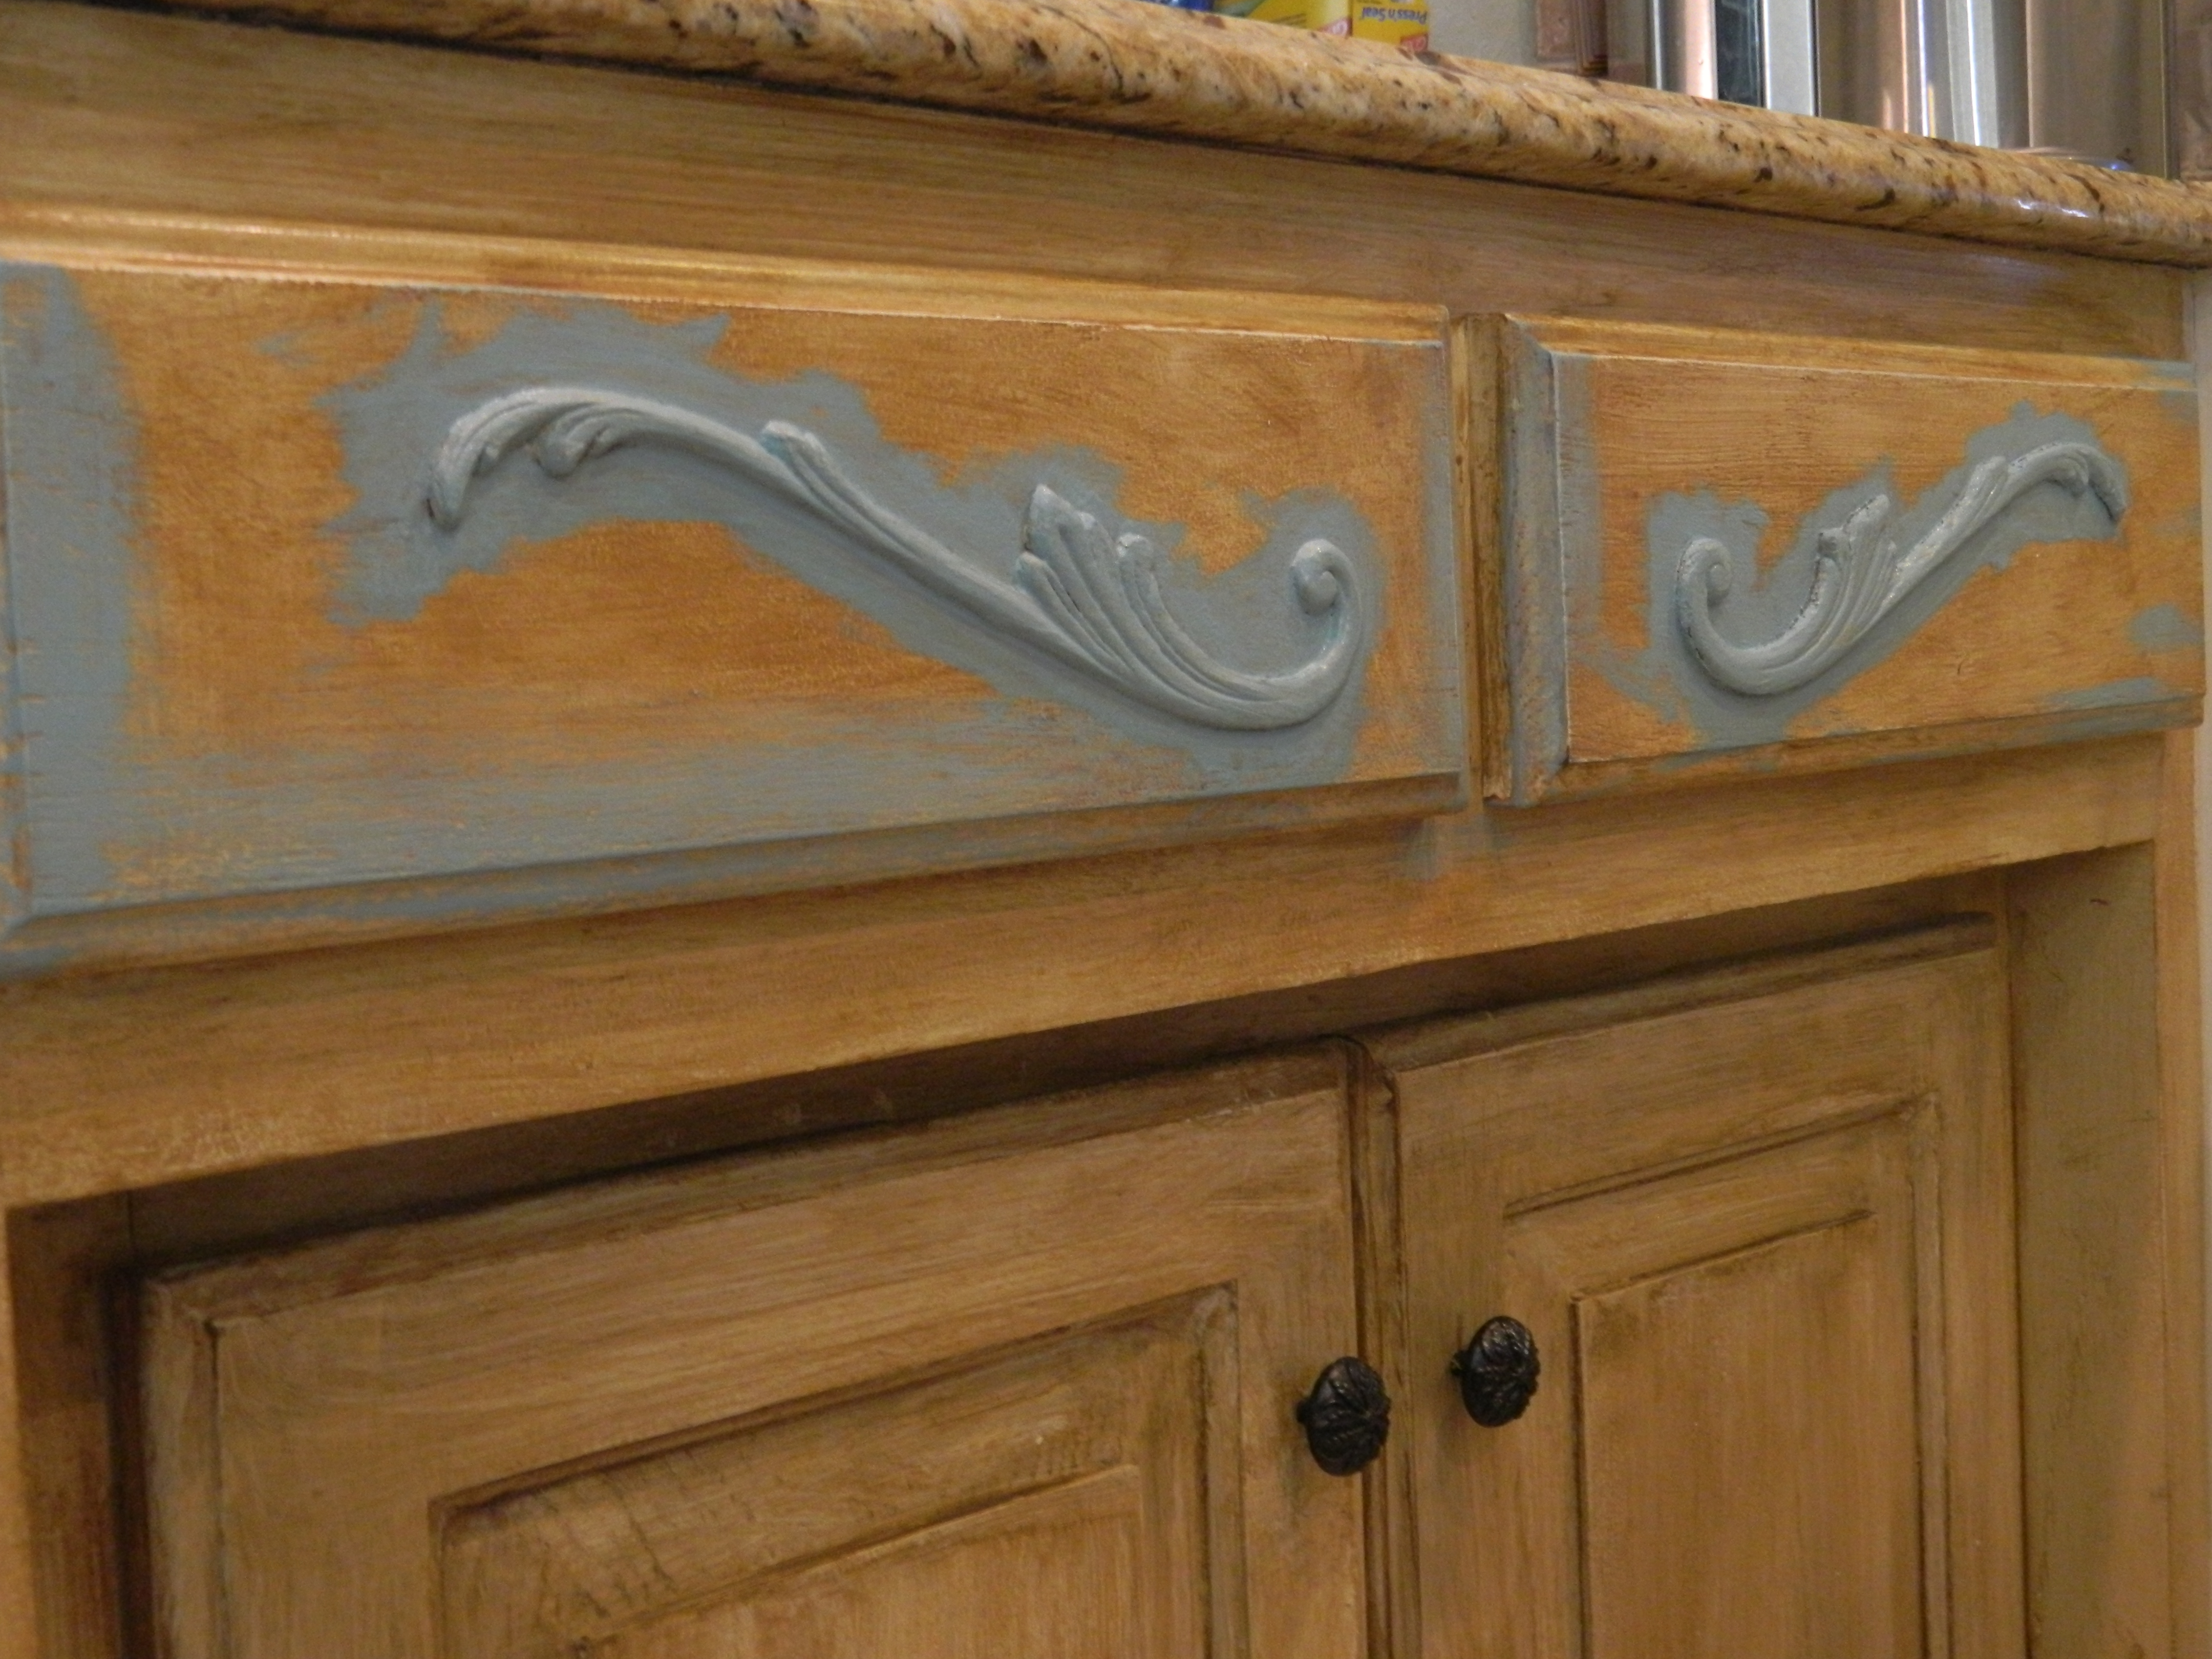 plain cabinets updated with architectural details kitchen cabinet updates Need an easy and relatively inexpensive way to update your plain builders grade cabinets architectural details and paint can add a distinctive touch to